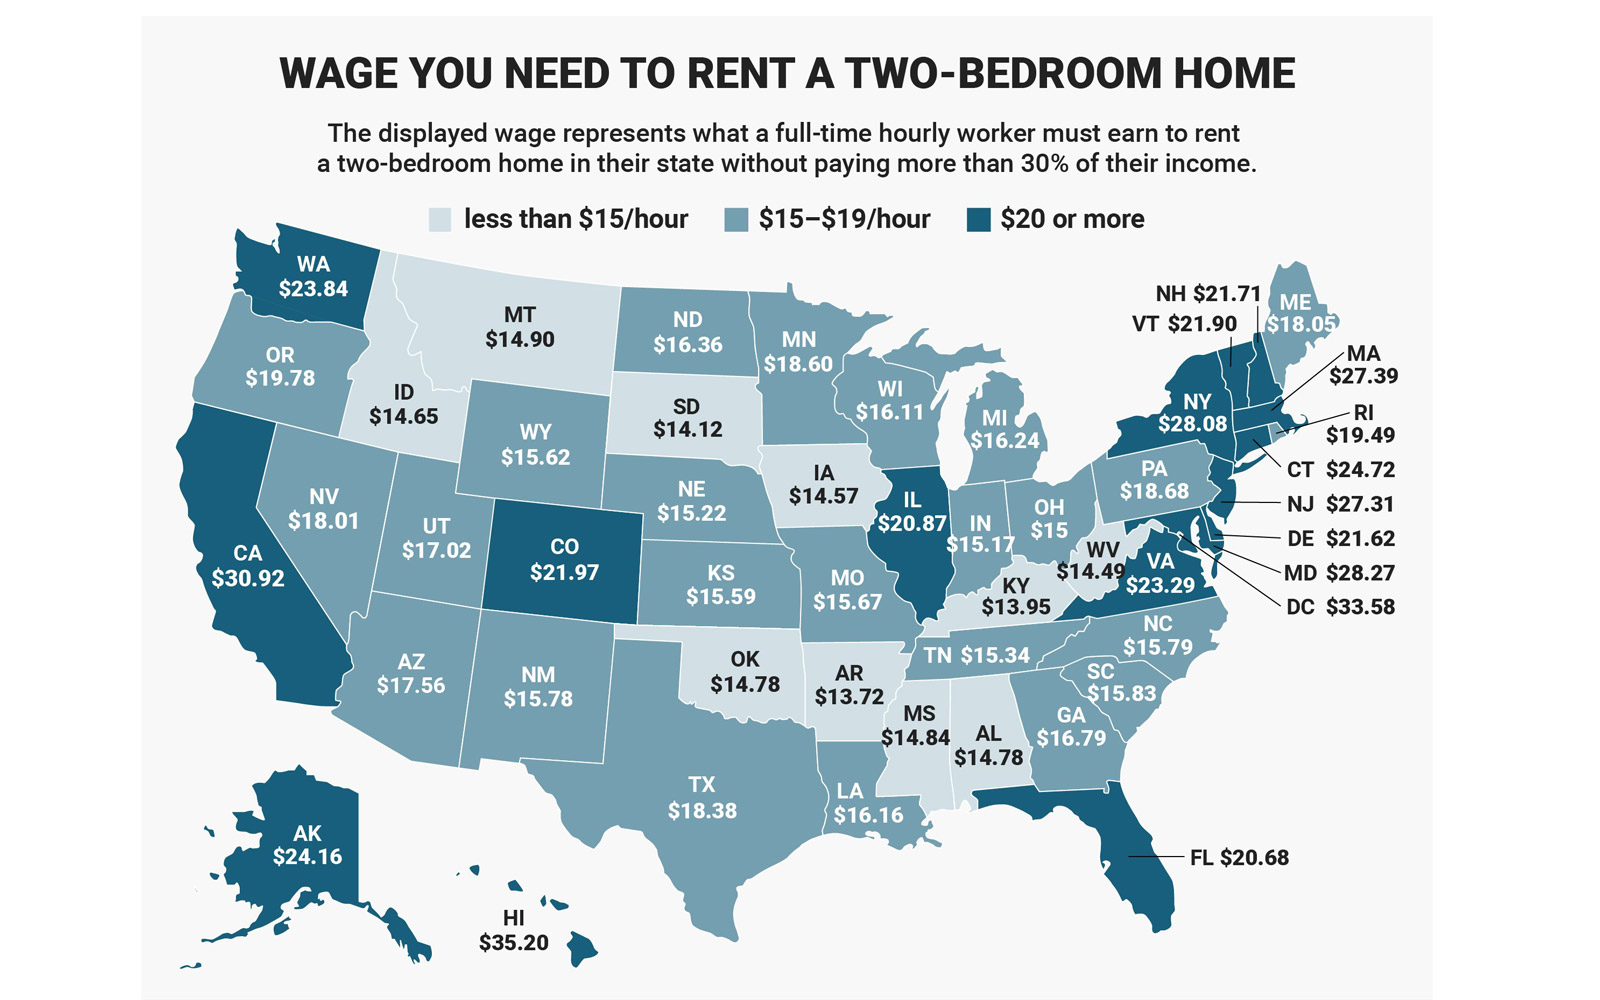 Wage needed to rent a two-bedroom home in each state.